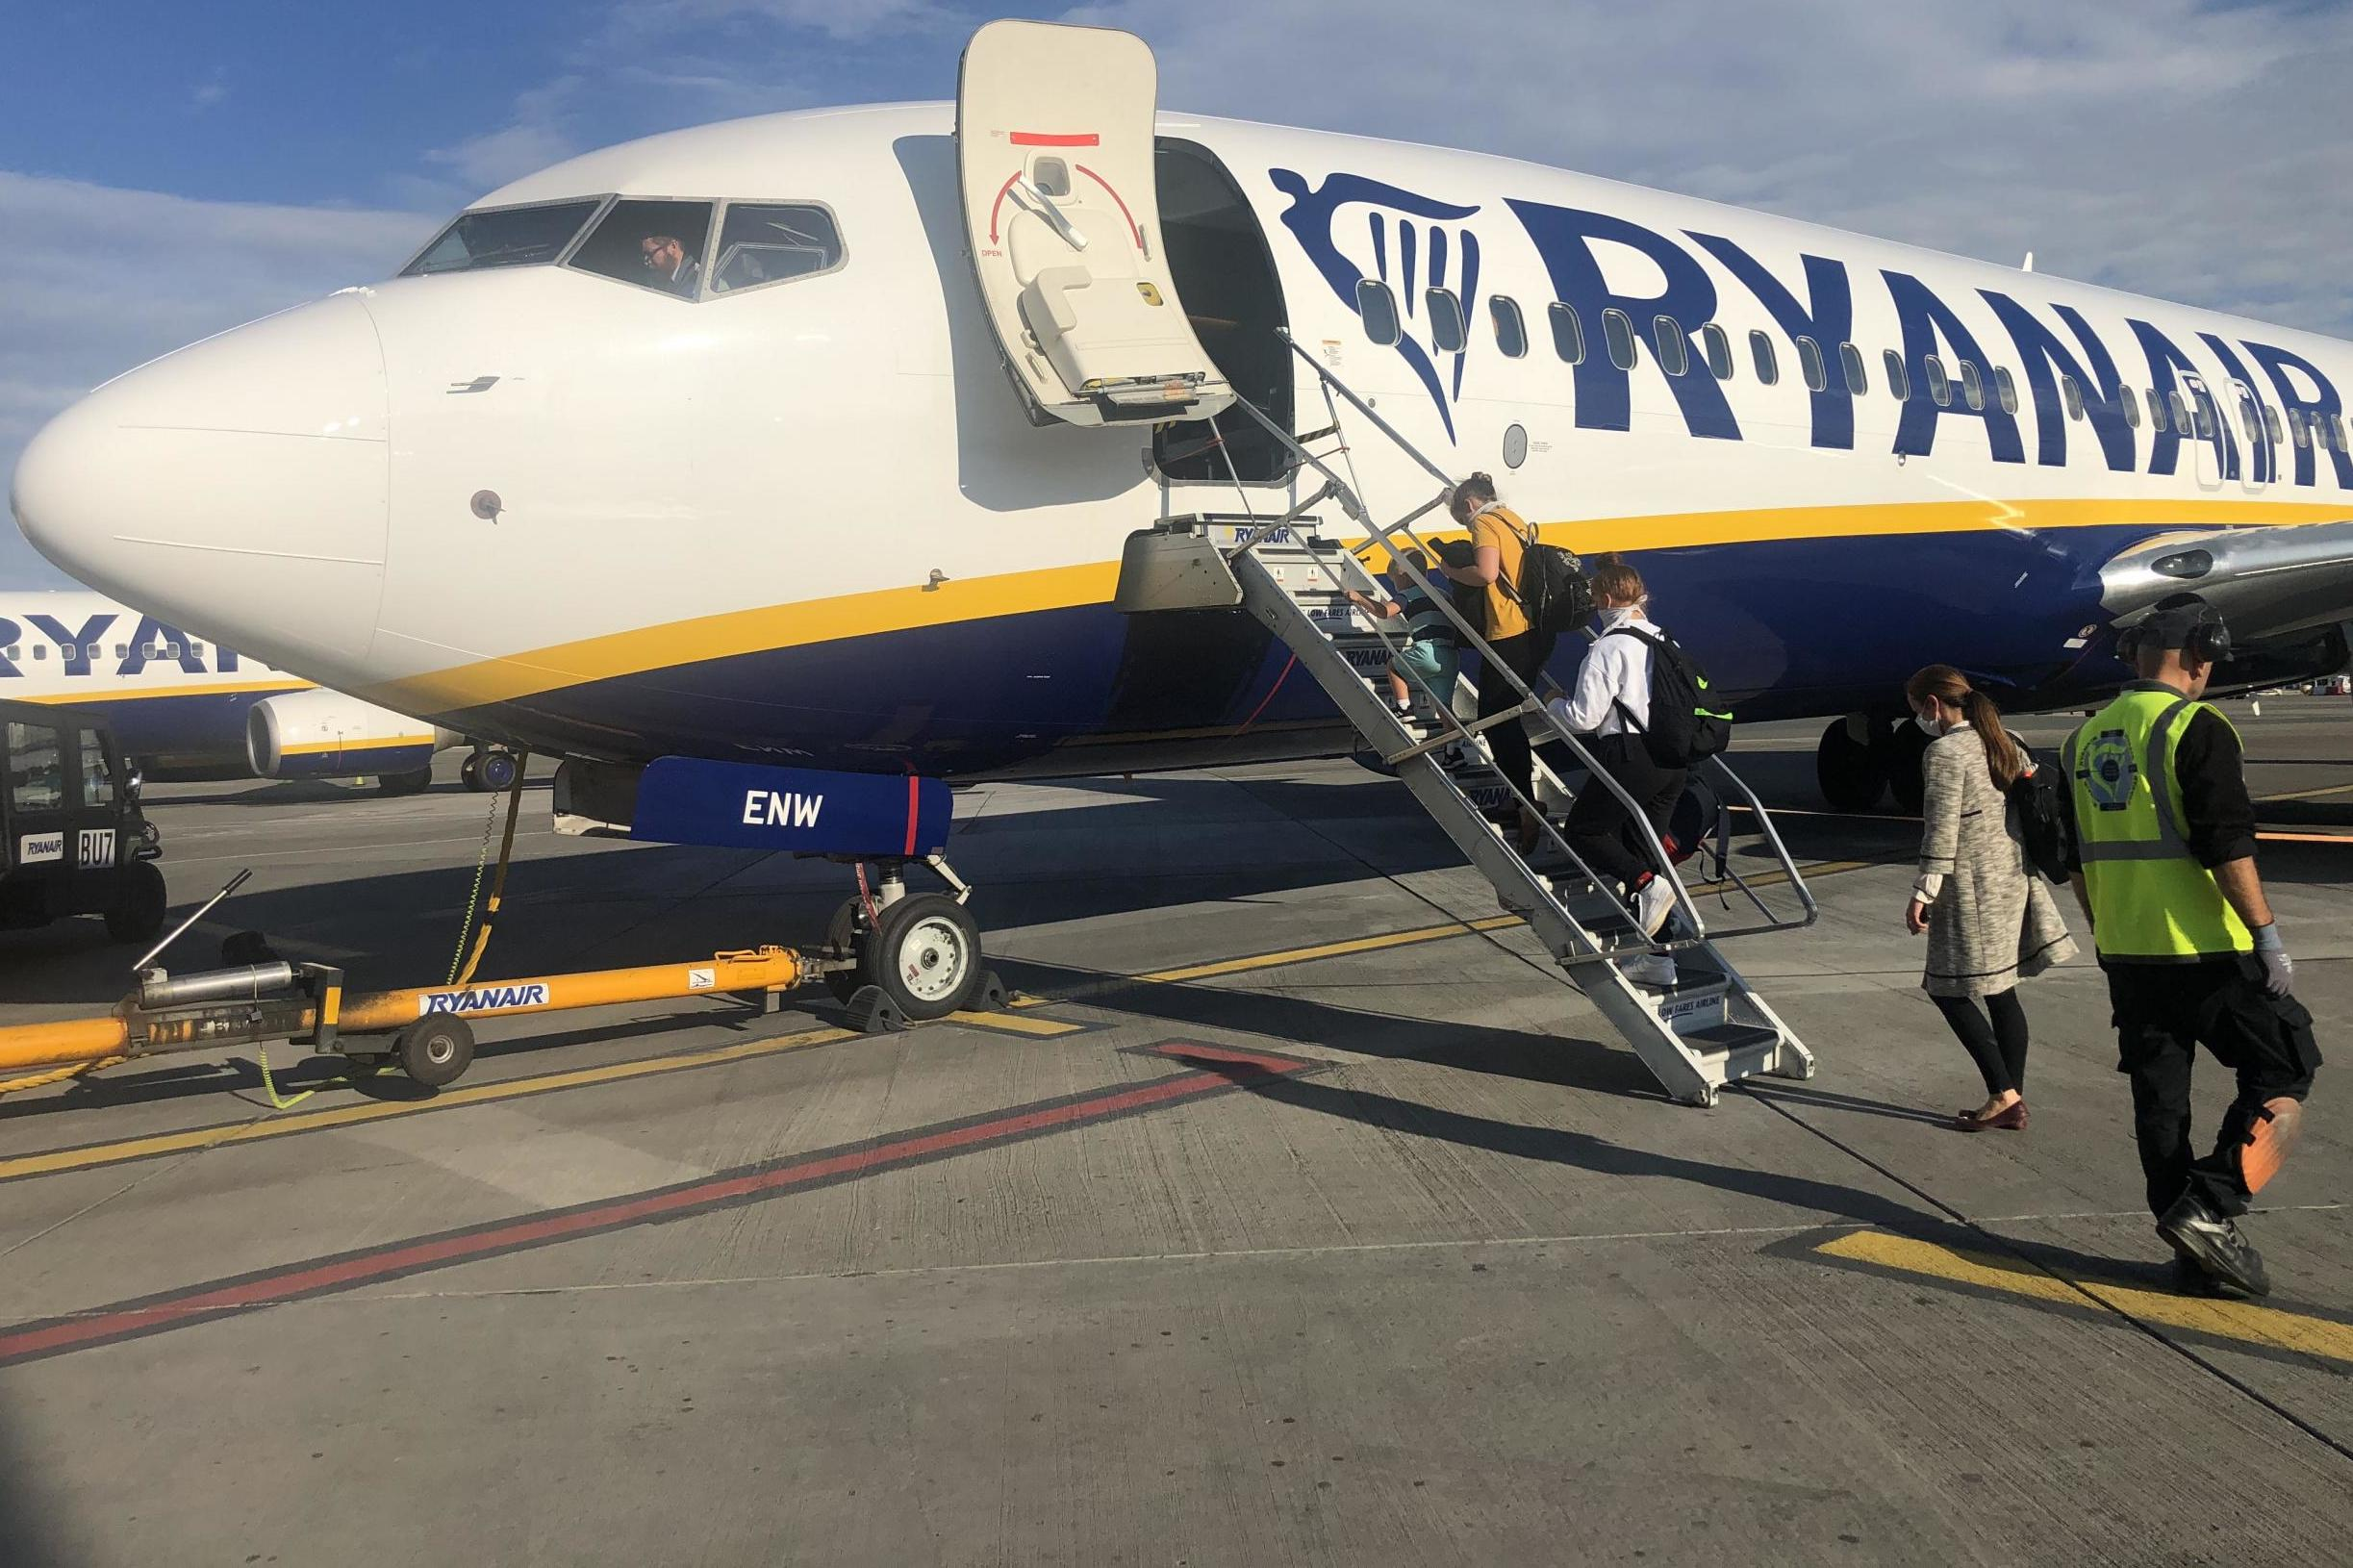 Ryanair pilots to take 20% pay cut after boss Michael O'Leary issues jobs ultimatum